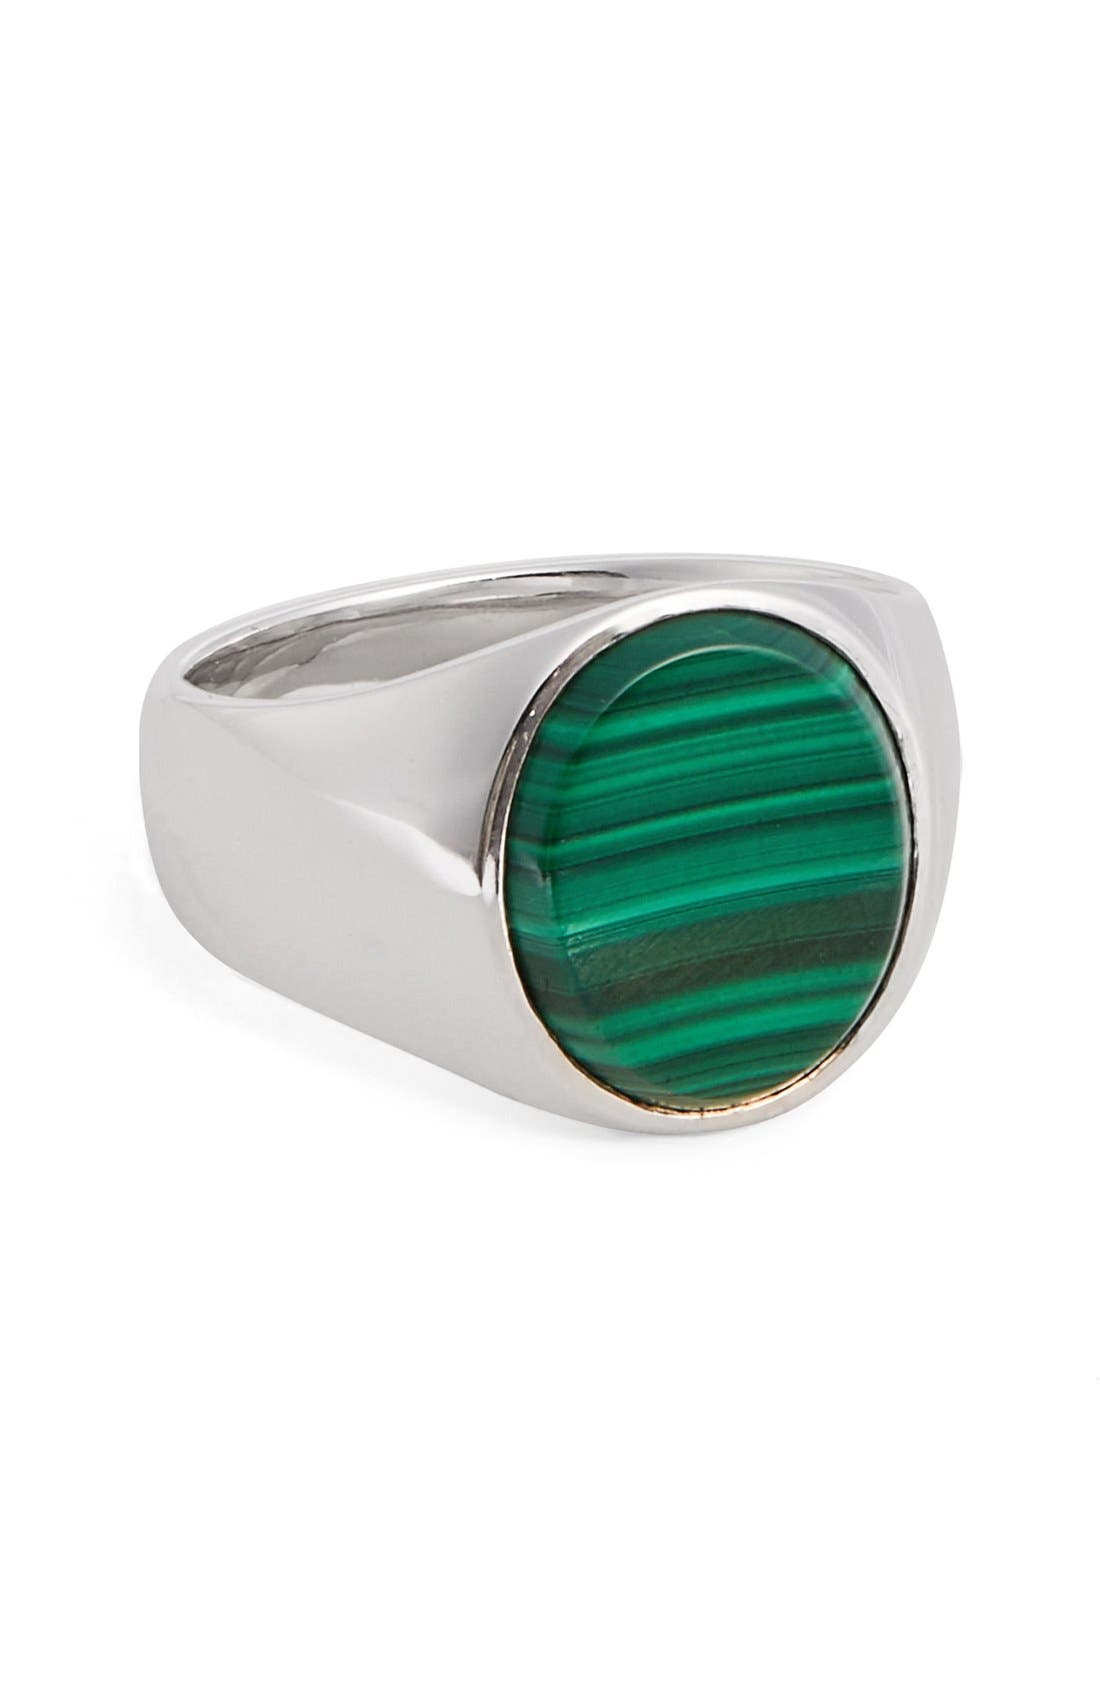 TOM WOOD Patriot Collection Oval Malachite Signet Ring